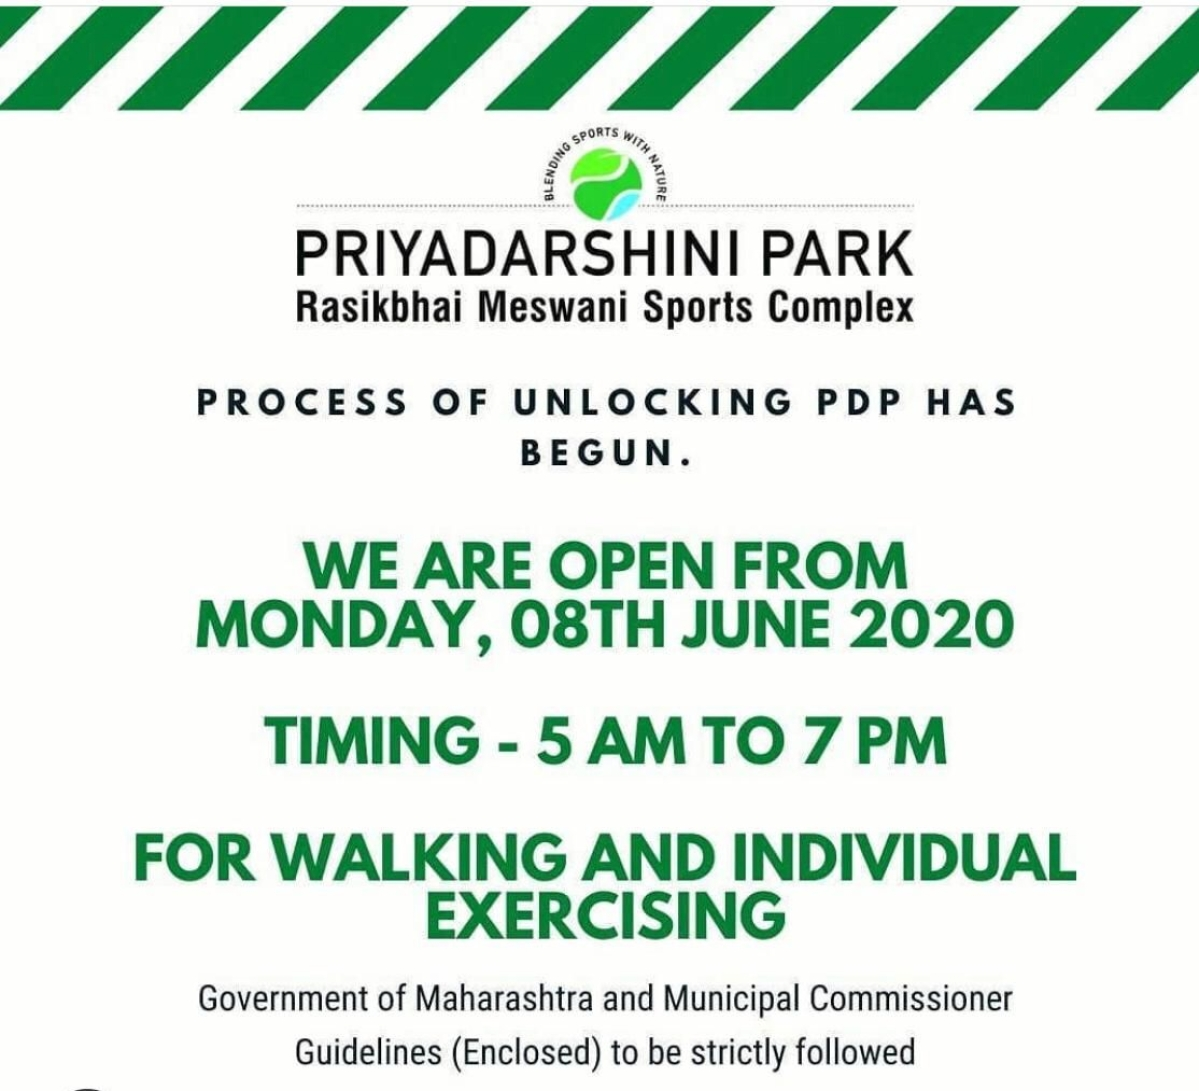 Priyadarshini Park opens up for joggers.